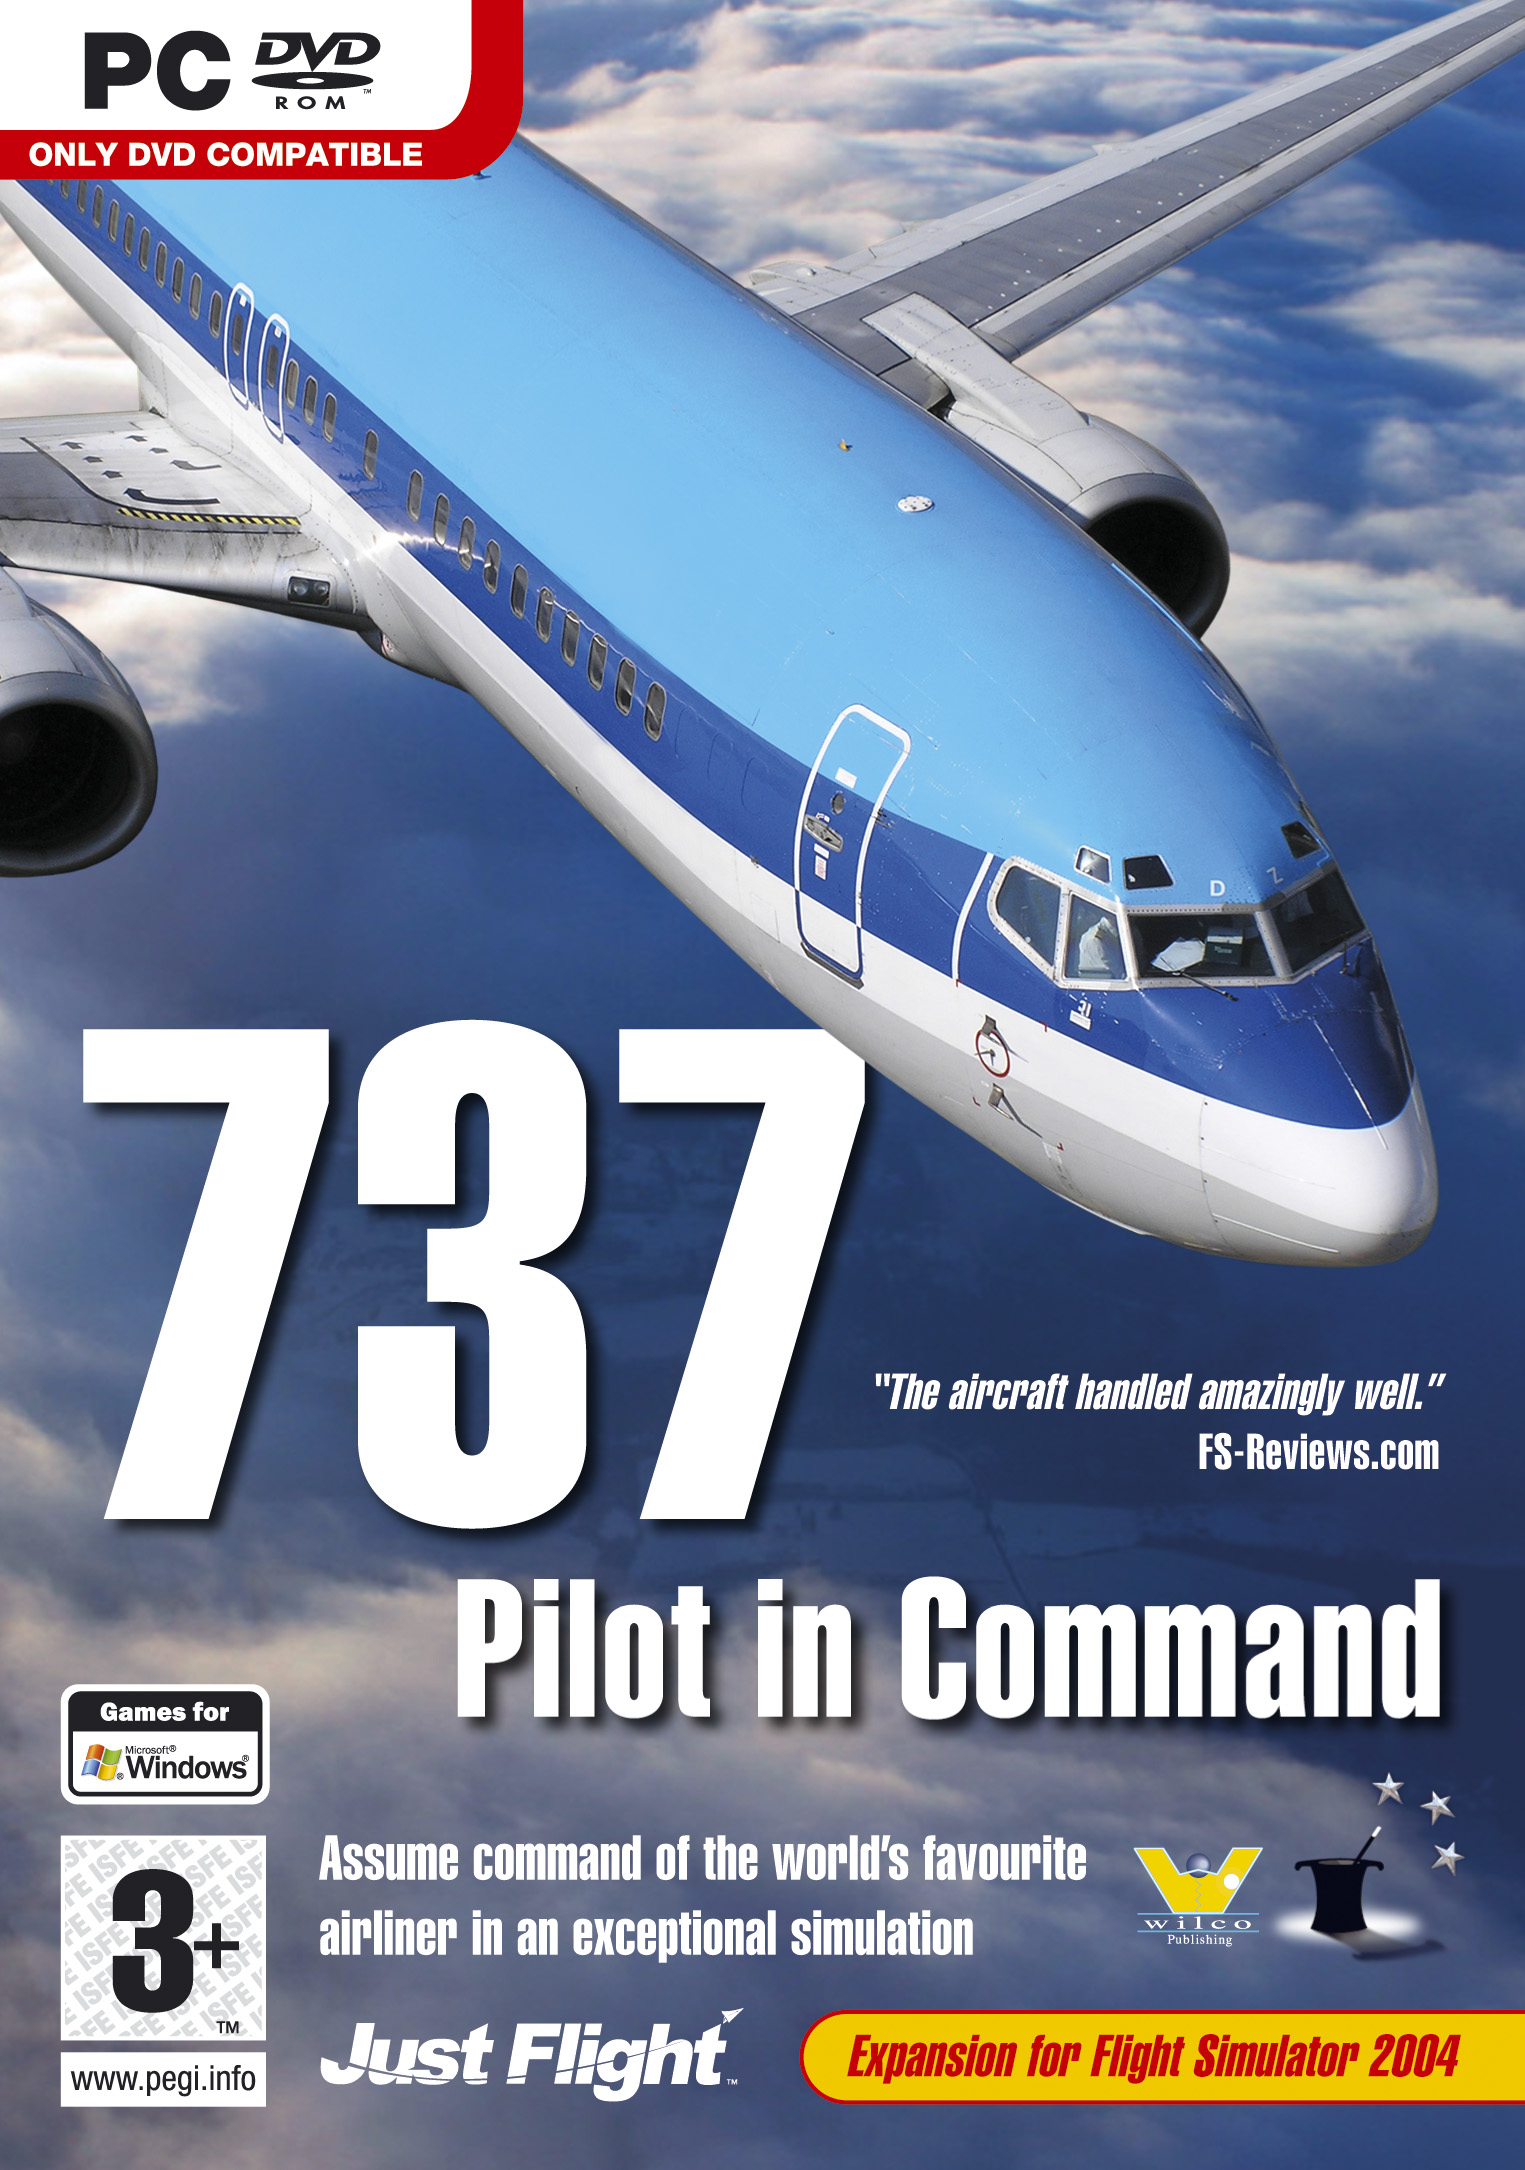 flight simulator boeing 737 pilot in command rh afeonline com Boeing 737 Clip Art American Airlines Boeing 737